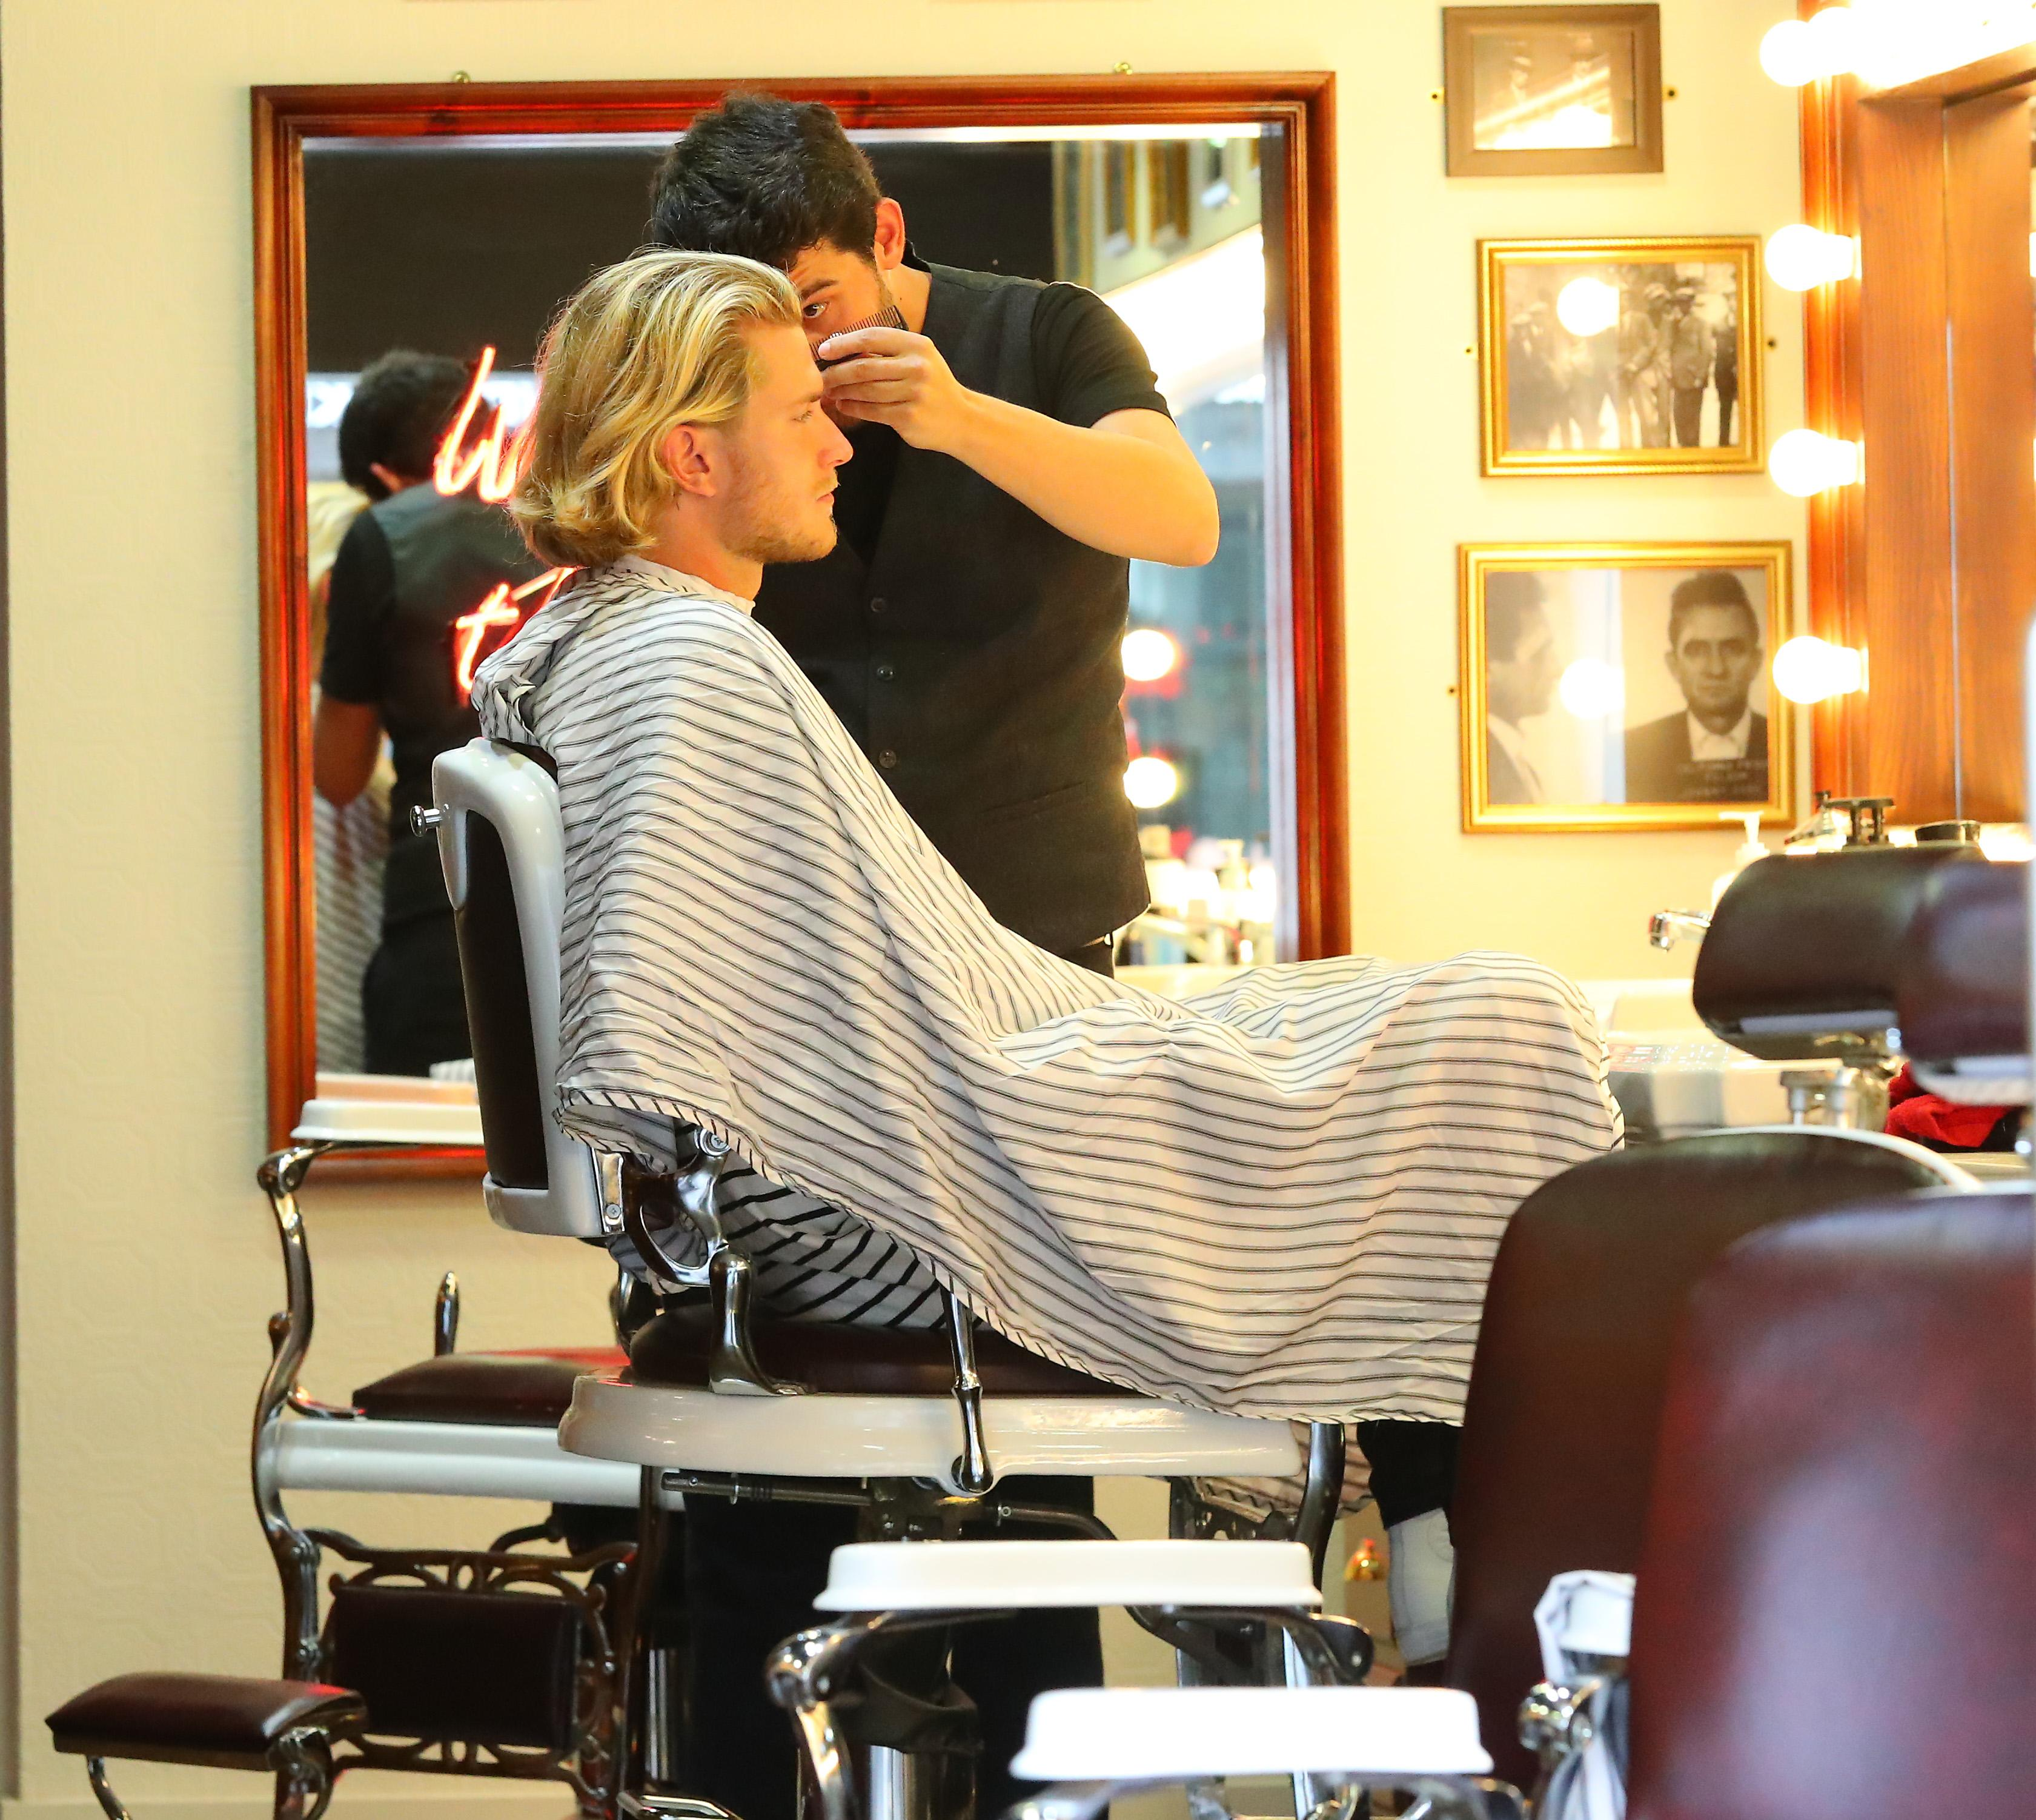 Loris Karius enjoyed a haircut at Barber Barber in Hale Village on Wednesday